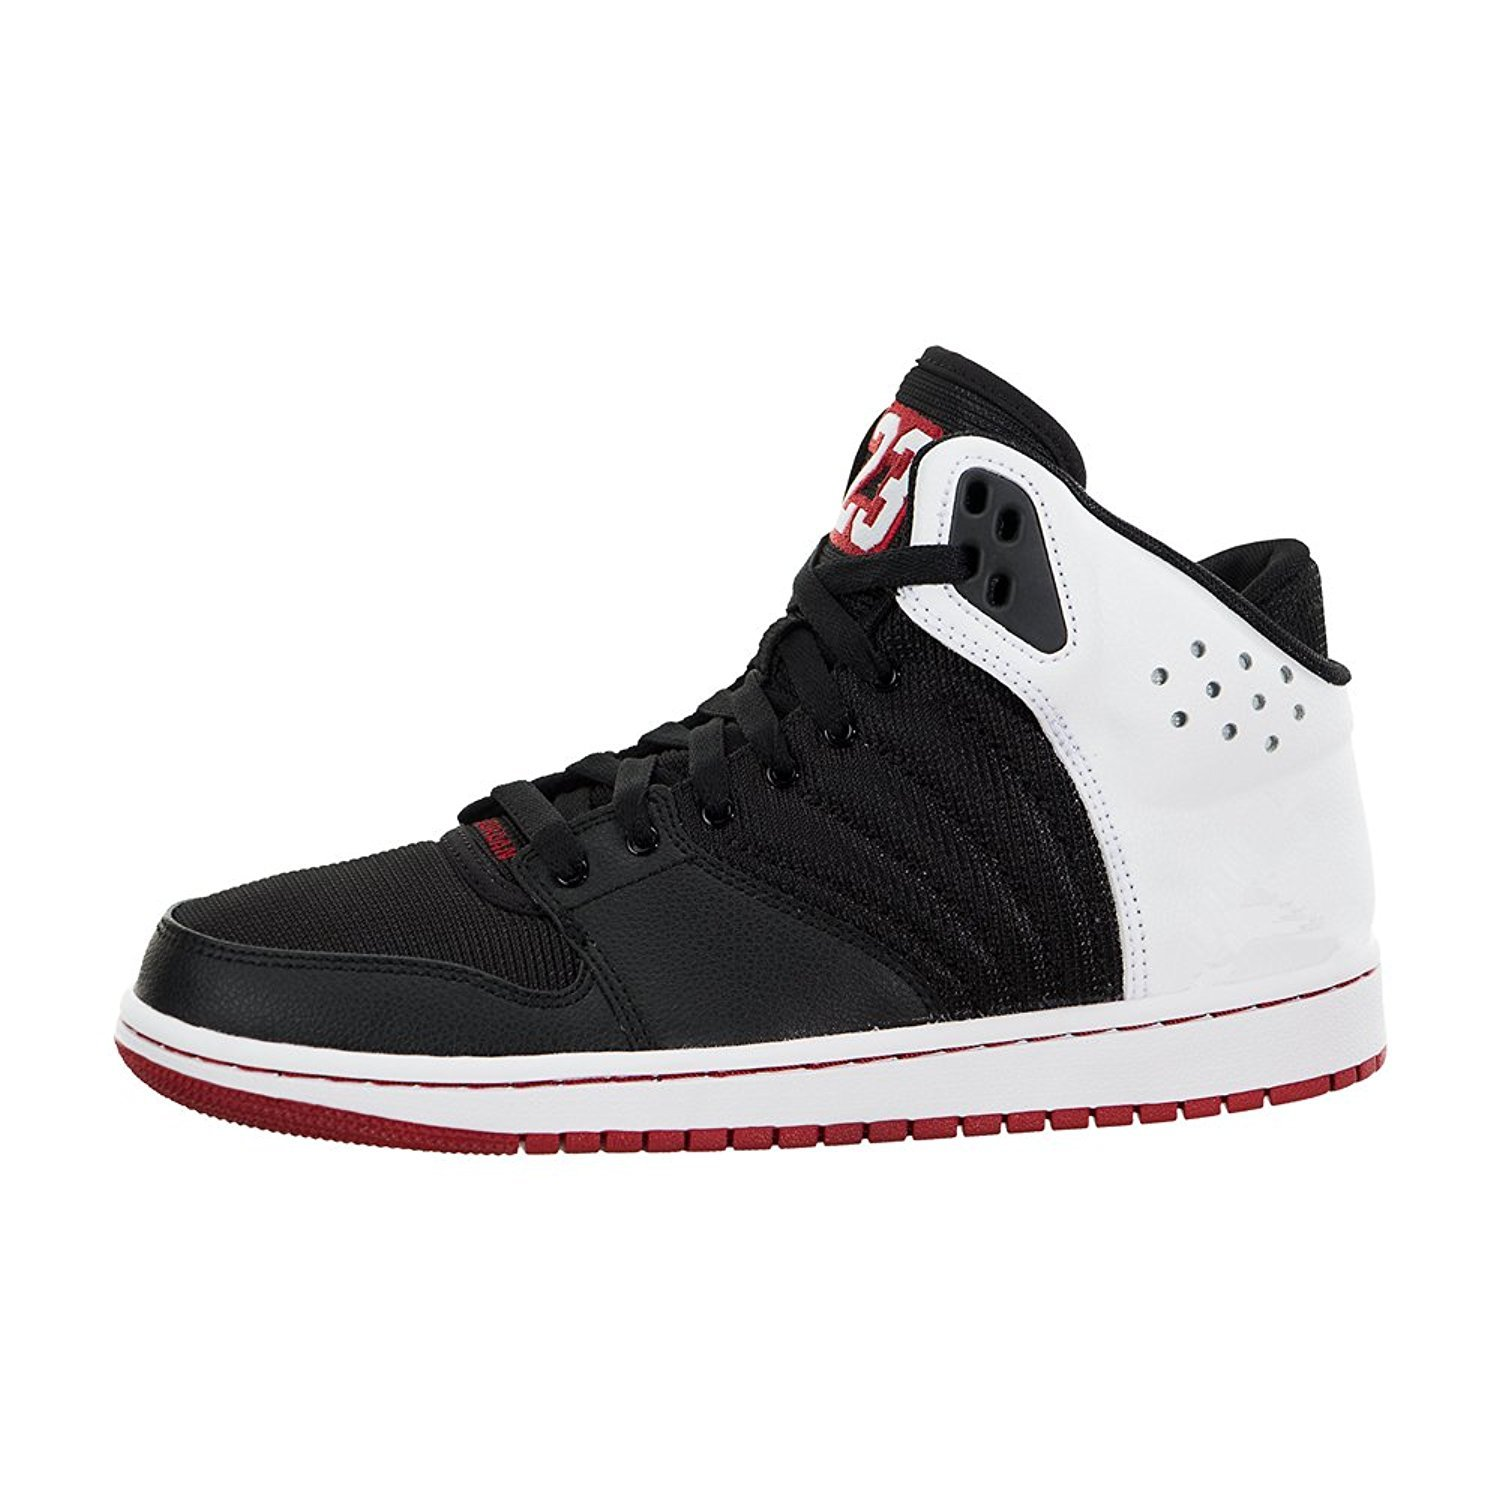 a474ed1fa Amazon.com | Jordan Men's 1 Flight 4 Shoe (820135-001) - Black/Gym  RED/White (US 12) | Shoes